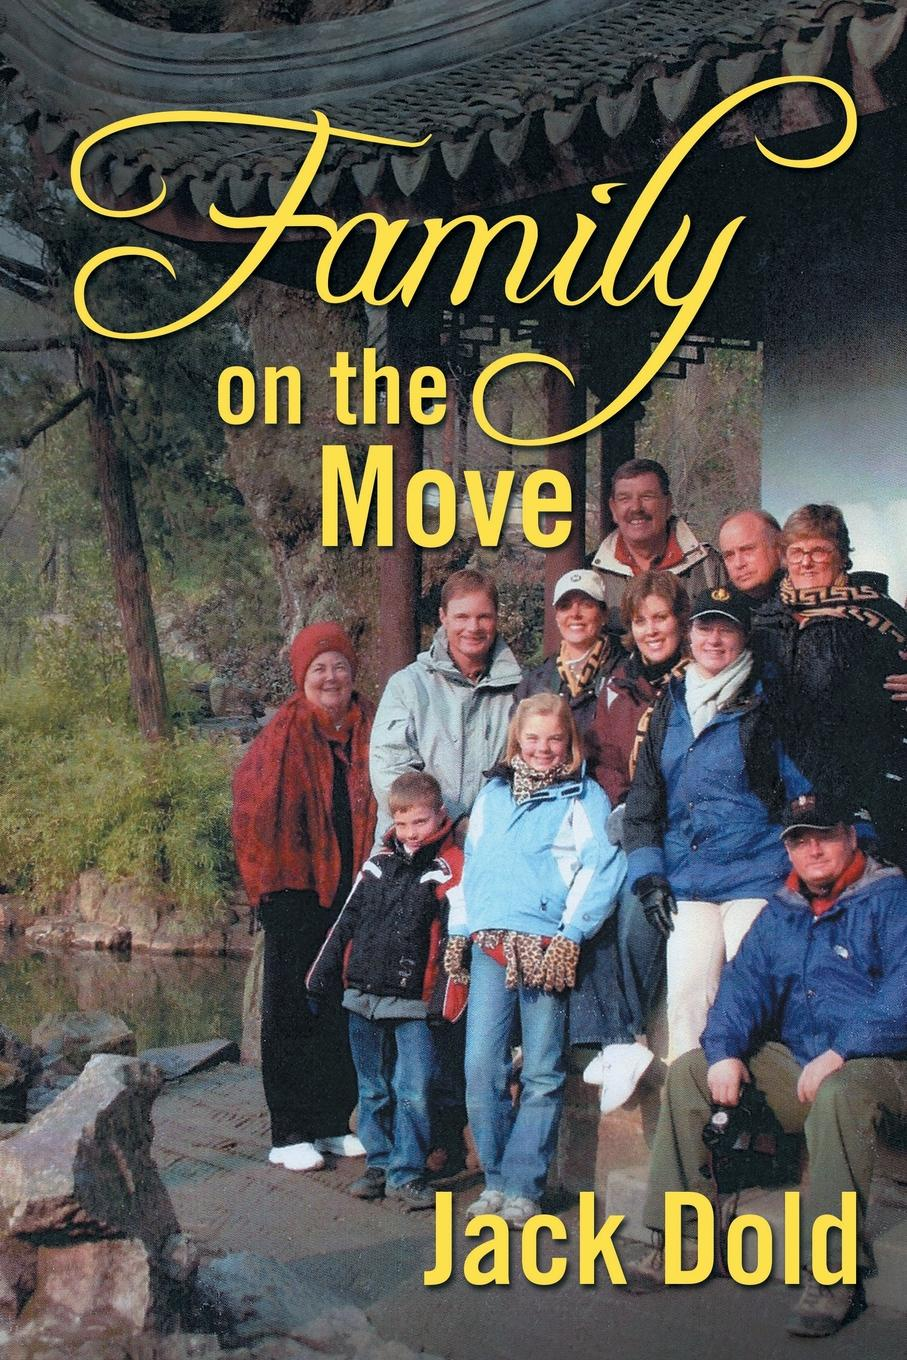 Jack Dold Family on the Move